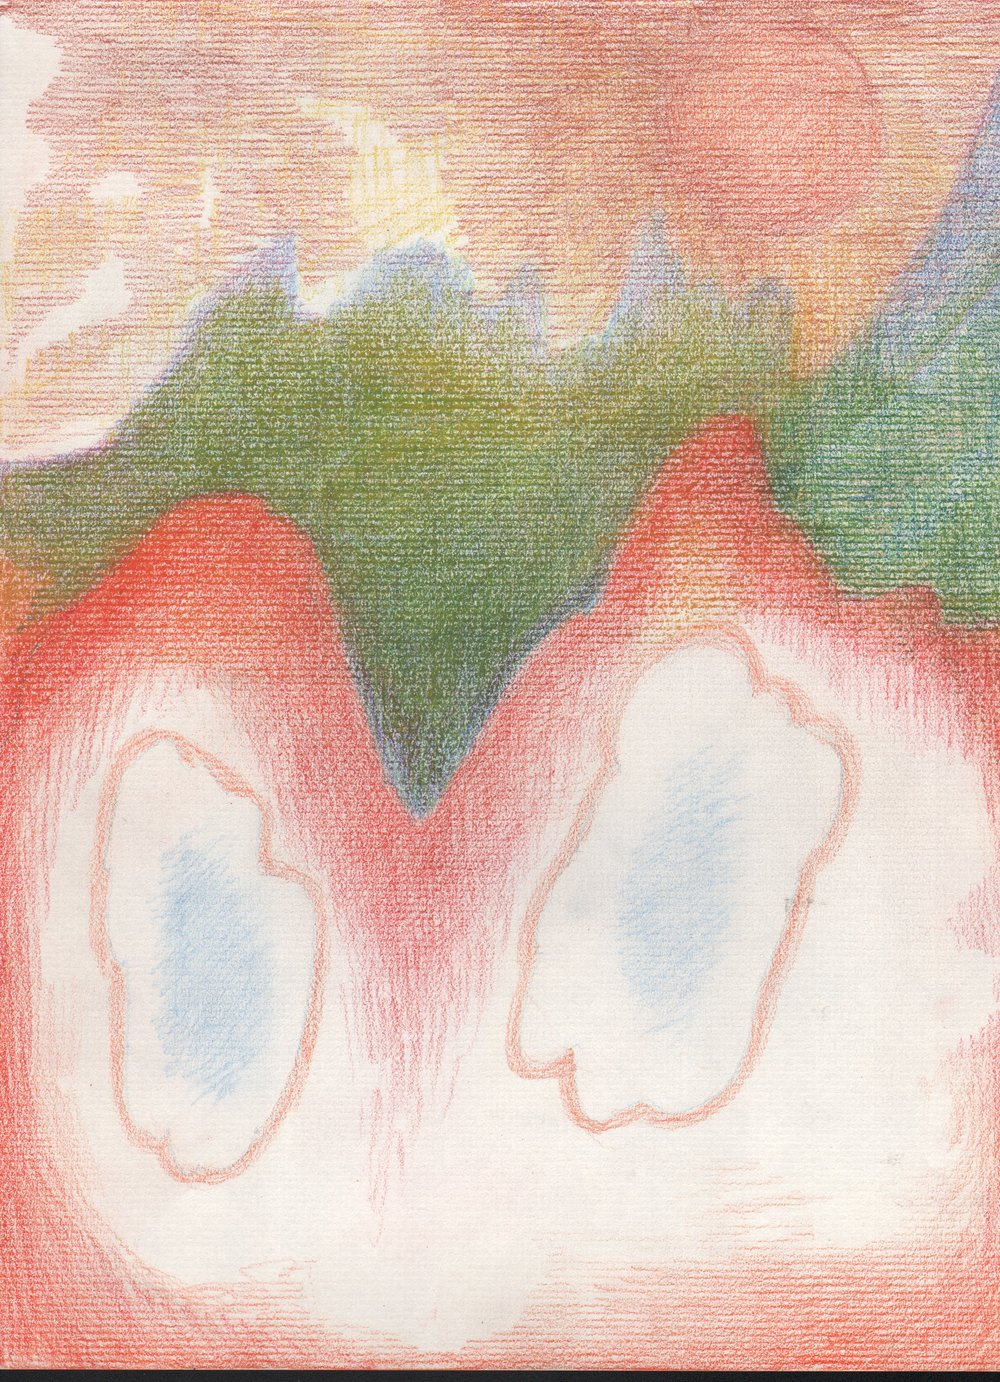 Eyes in the Mountain, 2016, 12 x 9 inches, pencil on paper